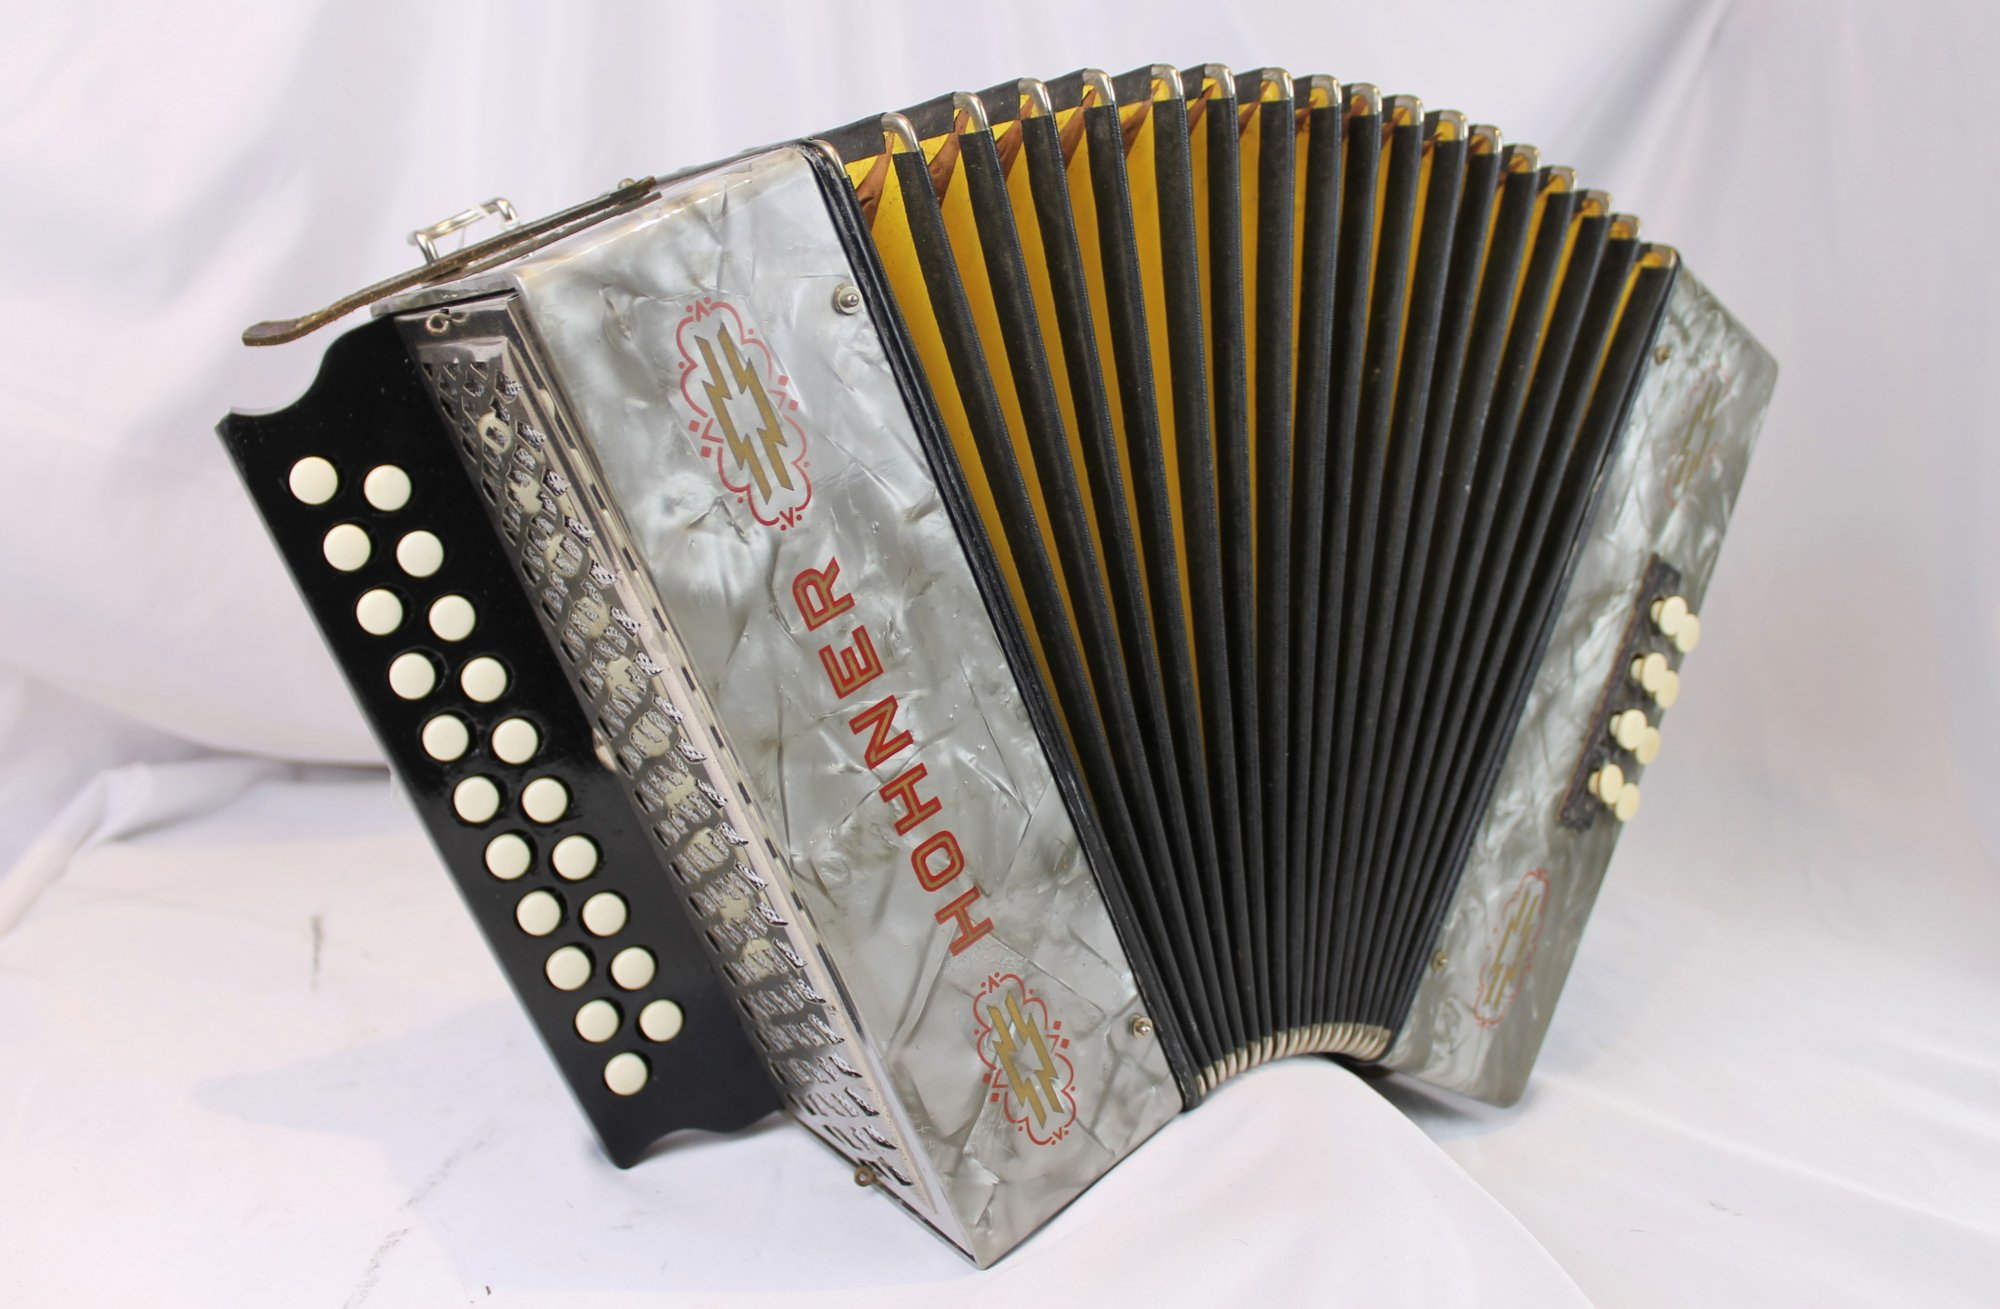 5187 - Silver Hohner 2815 Diatonic Button Accordion GC 21 8